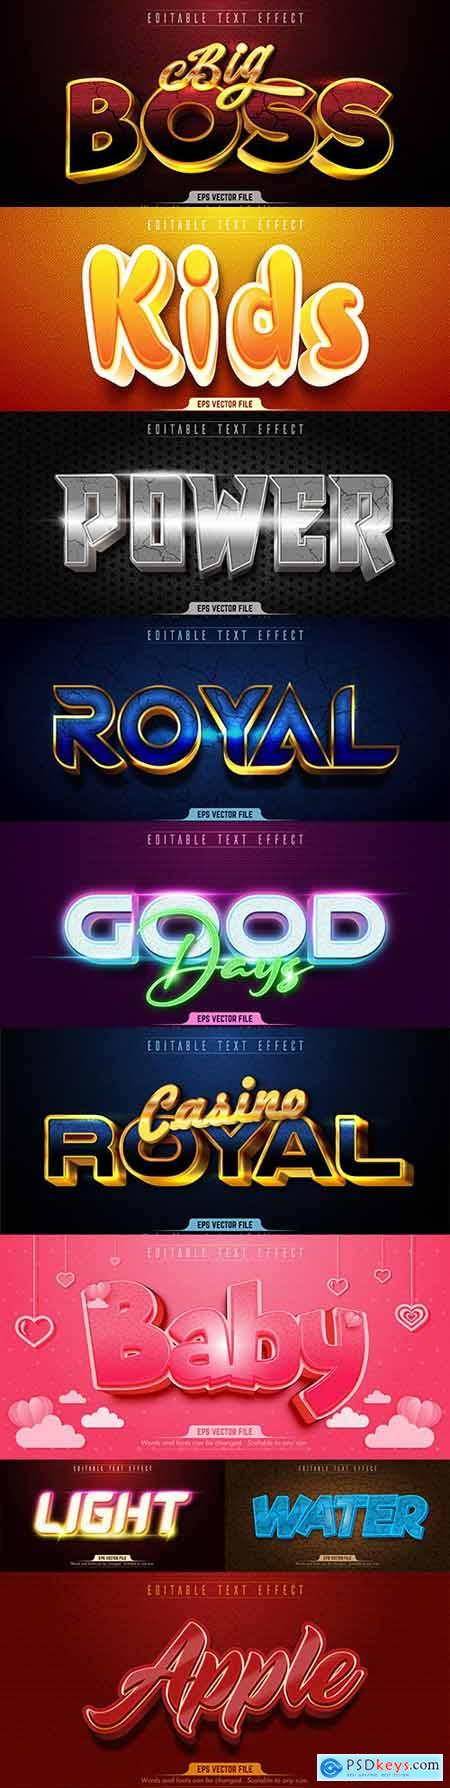 Editable font and 3d effect text design collection illustration 28